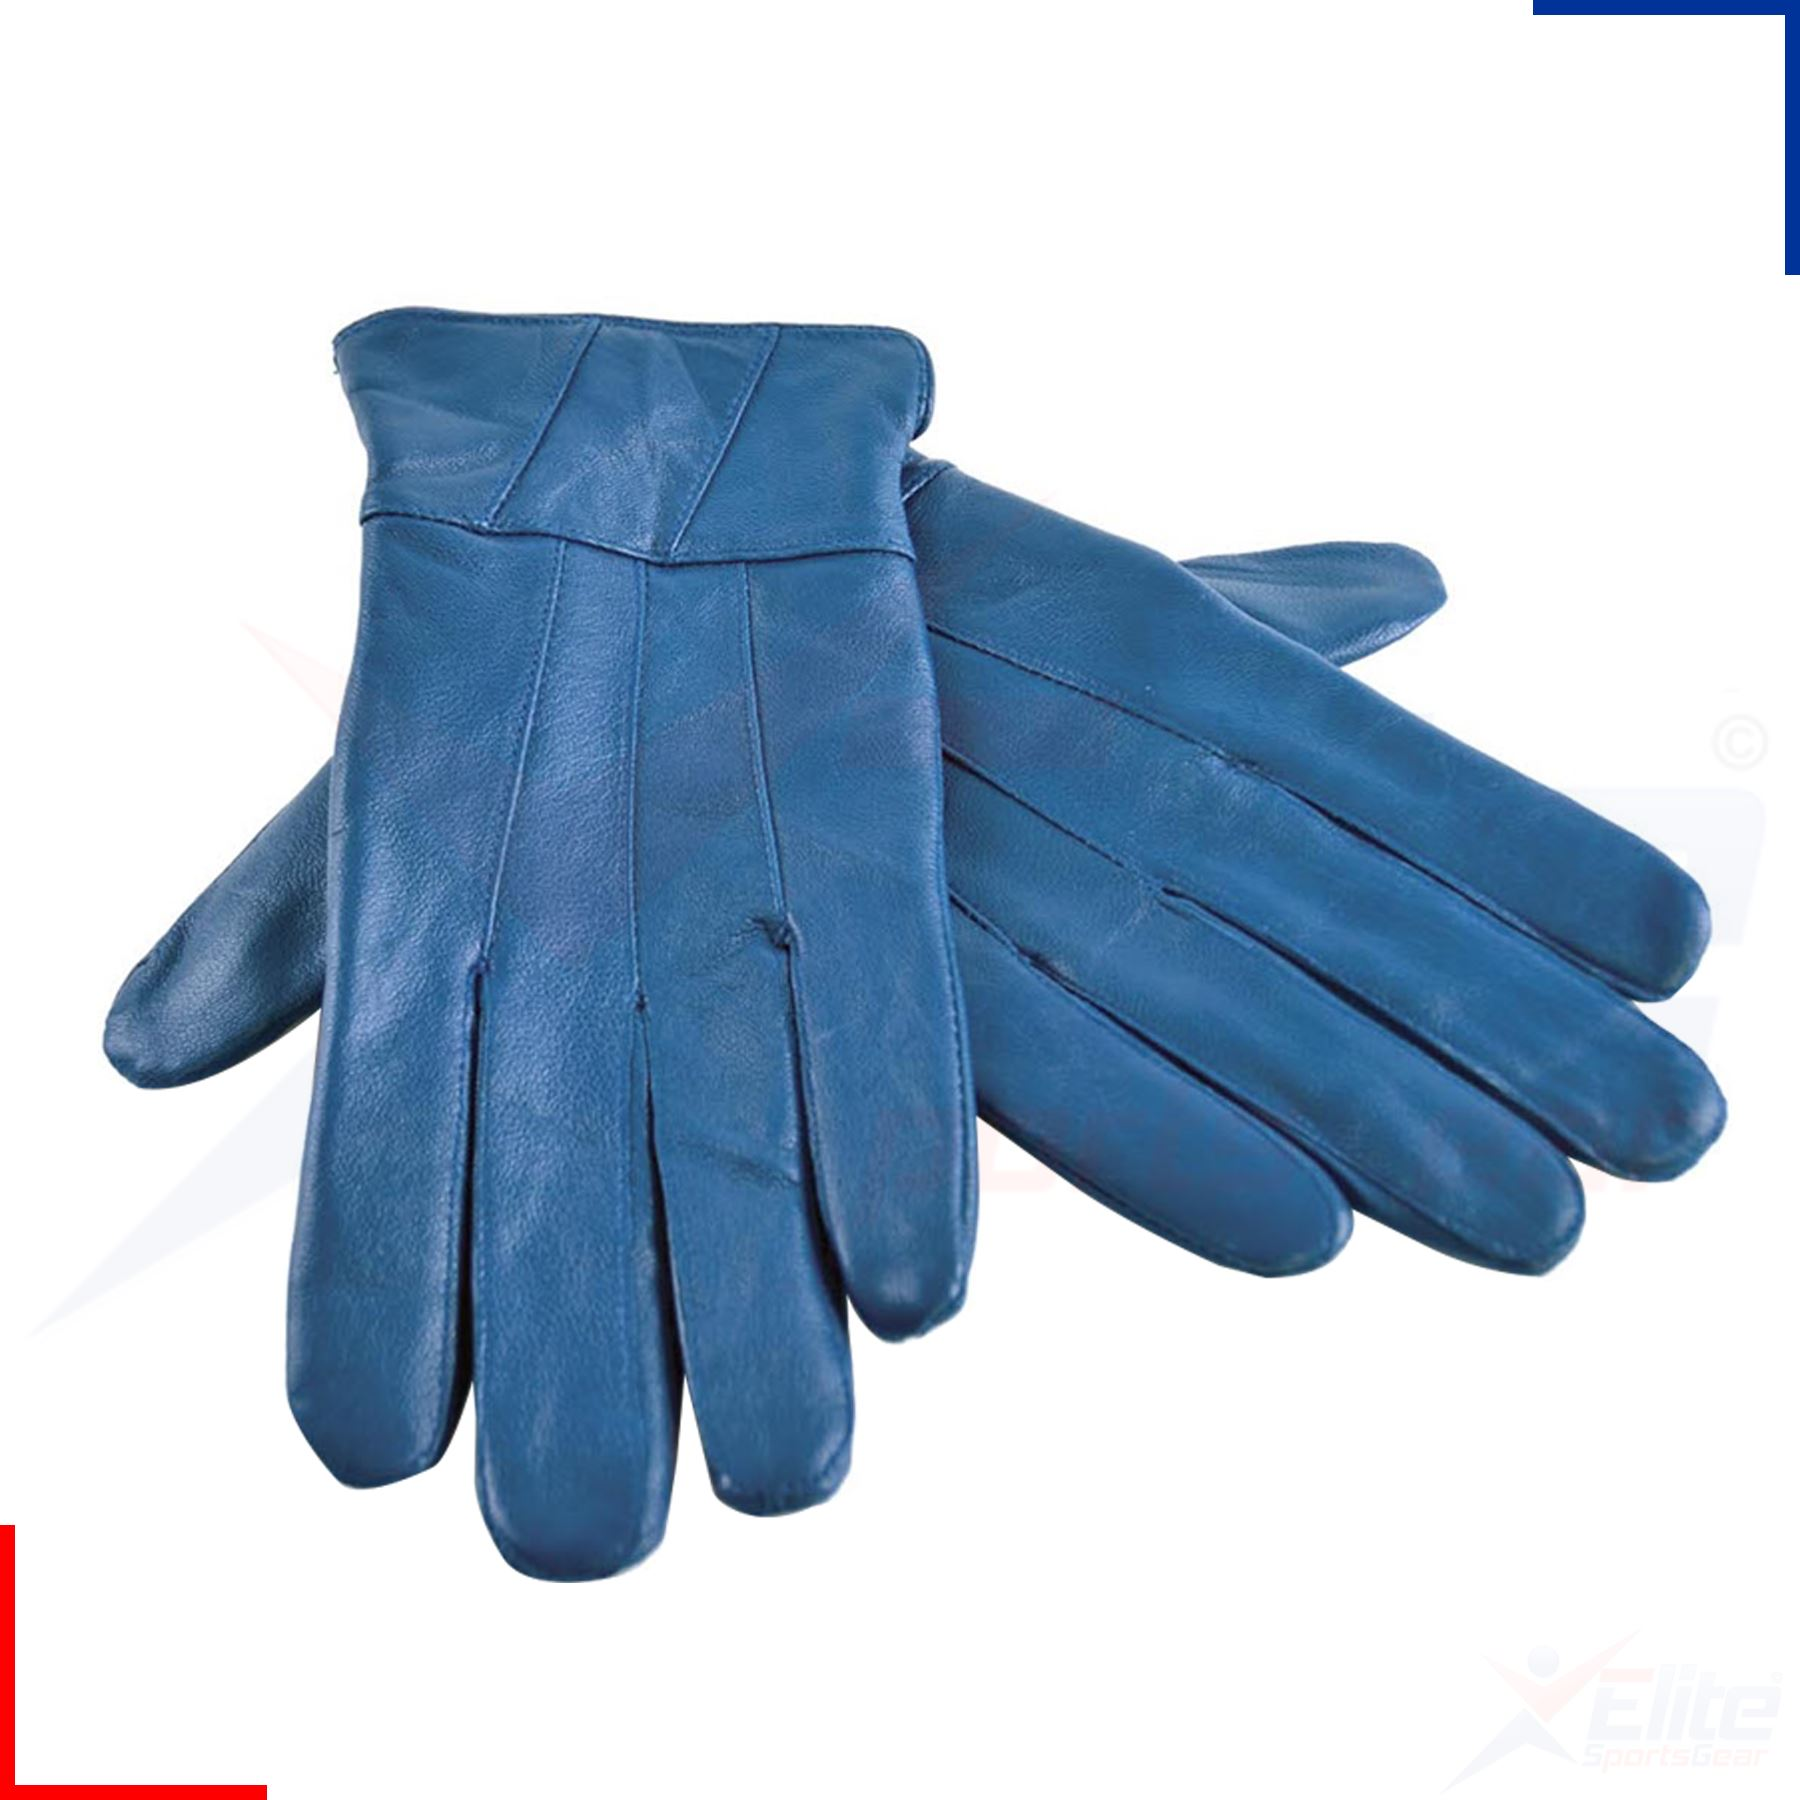 Ladies leather gloves blue - Ladies Women Sheepskin 100 Leather Gloves Soft Lining